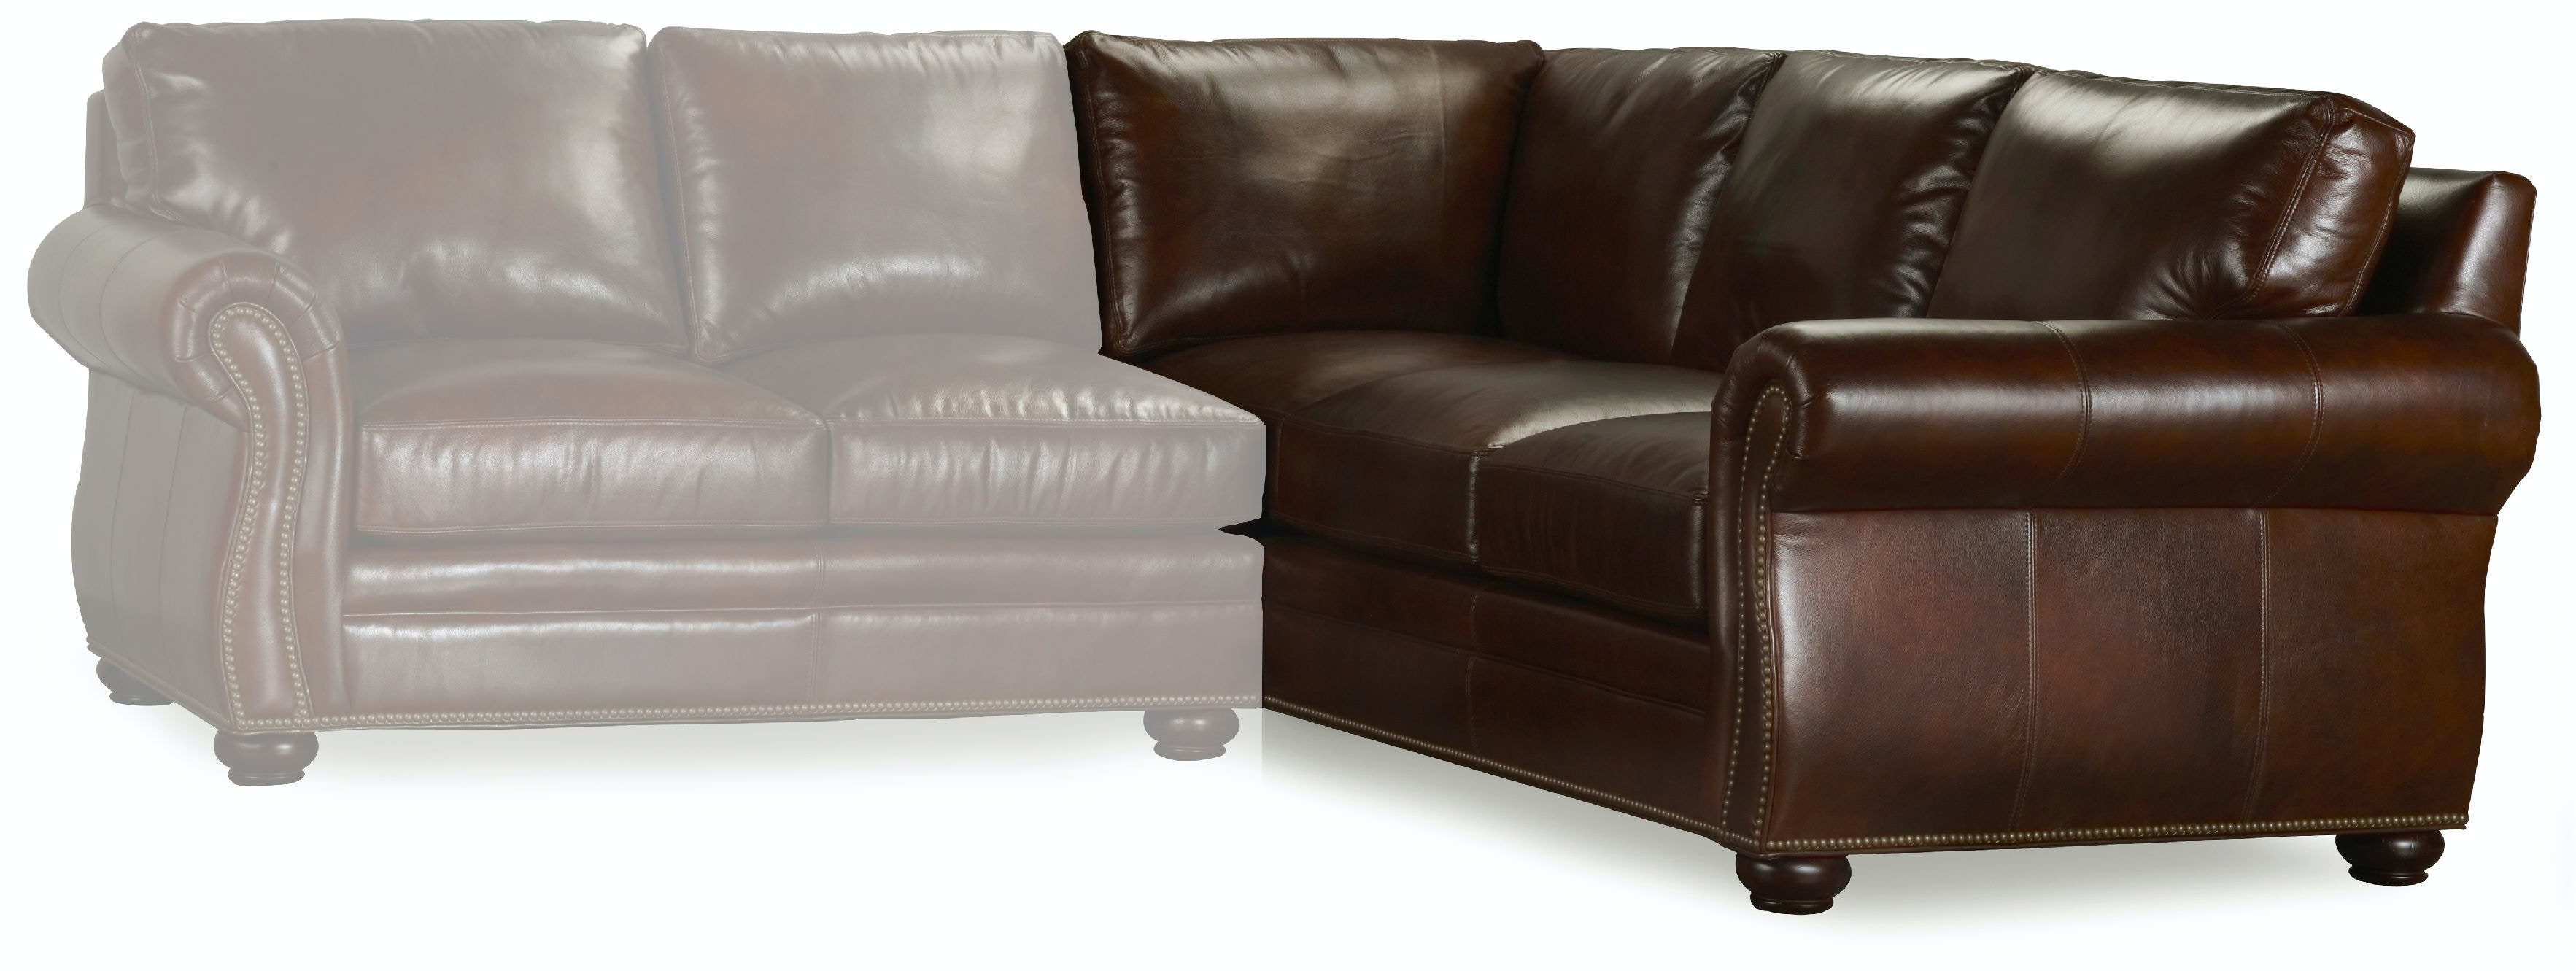 sterling sofa design l shape latest bradington young sectionals 221 sectional